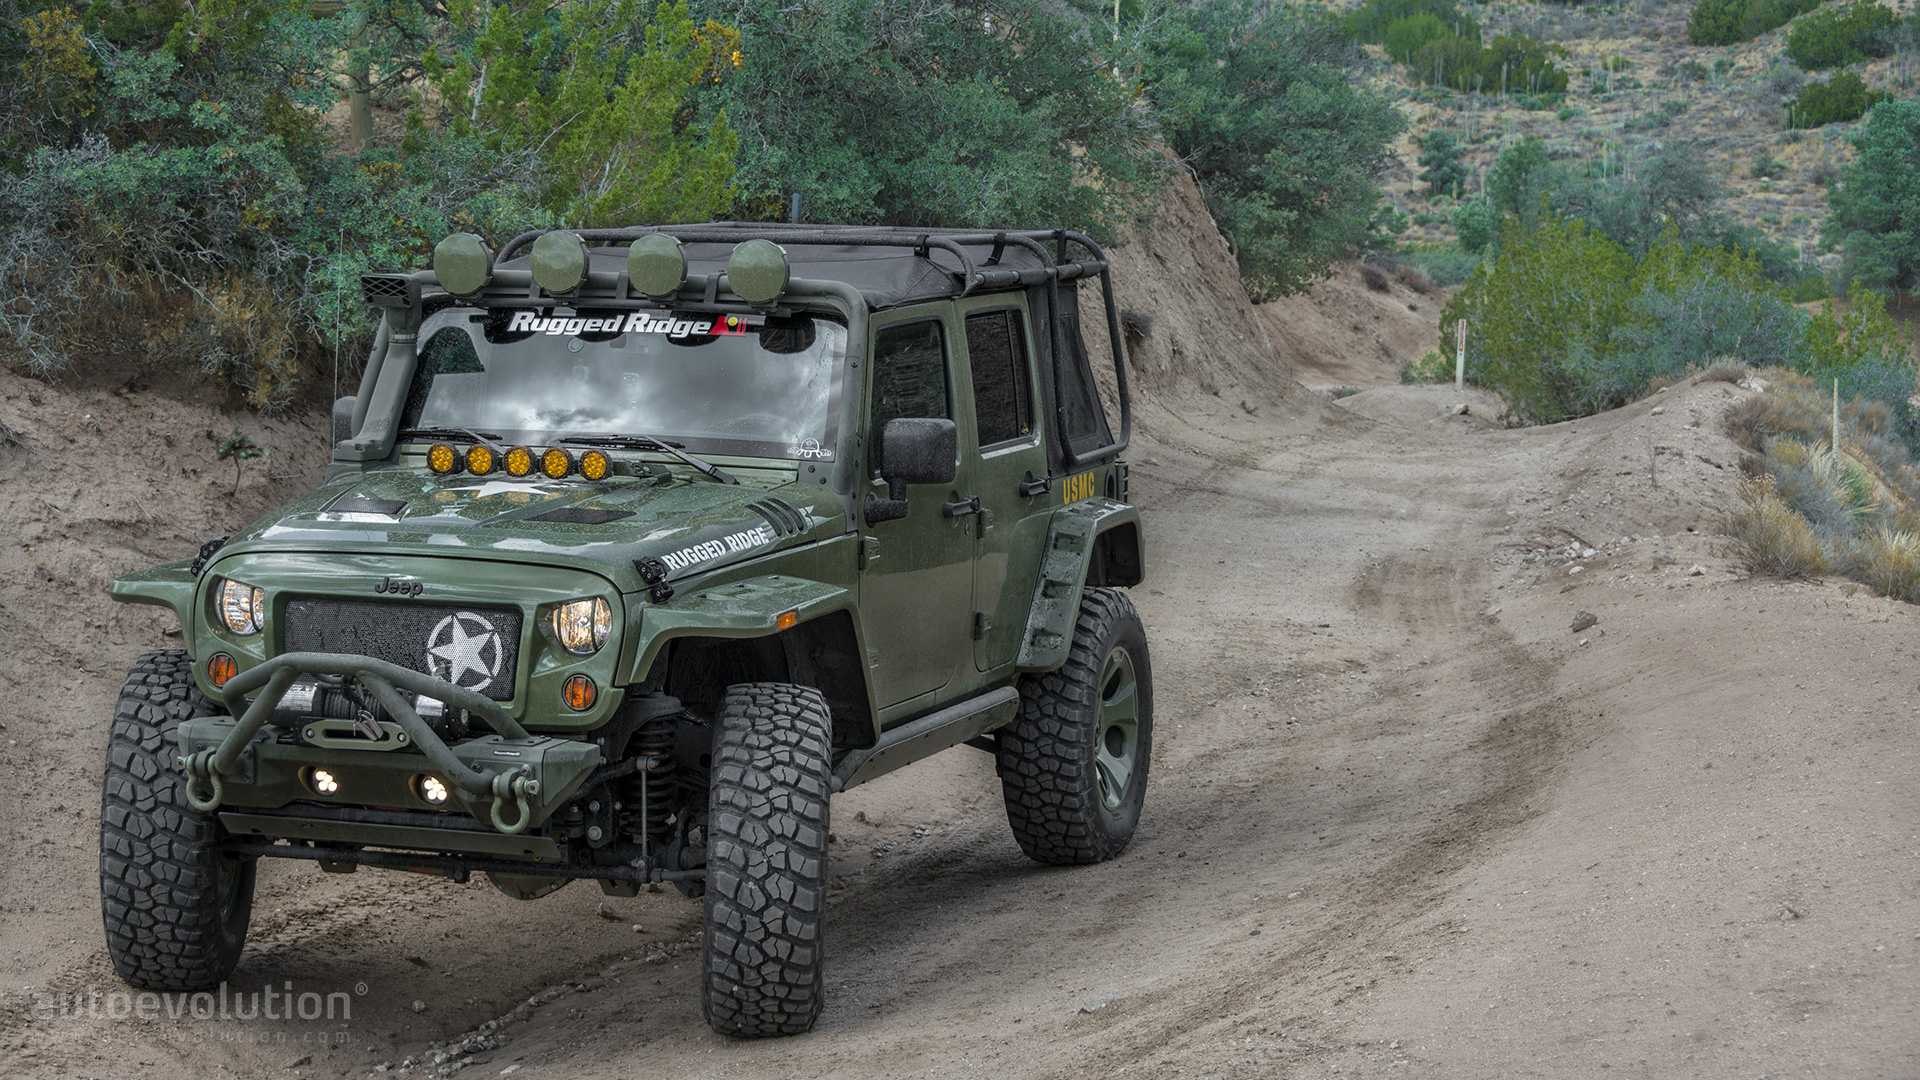 2014 Jeep Wrangler Rubicon By Rugged Ridge Wallpapers Straight Off